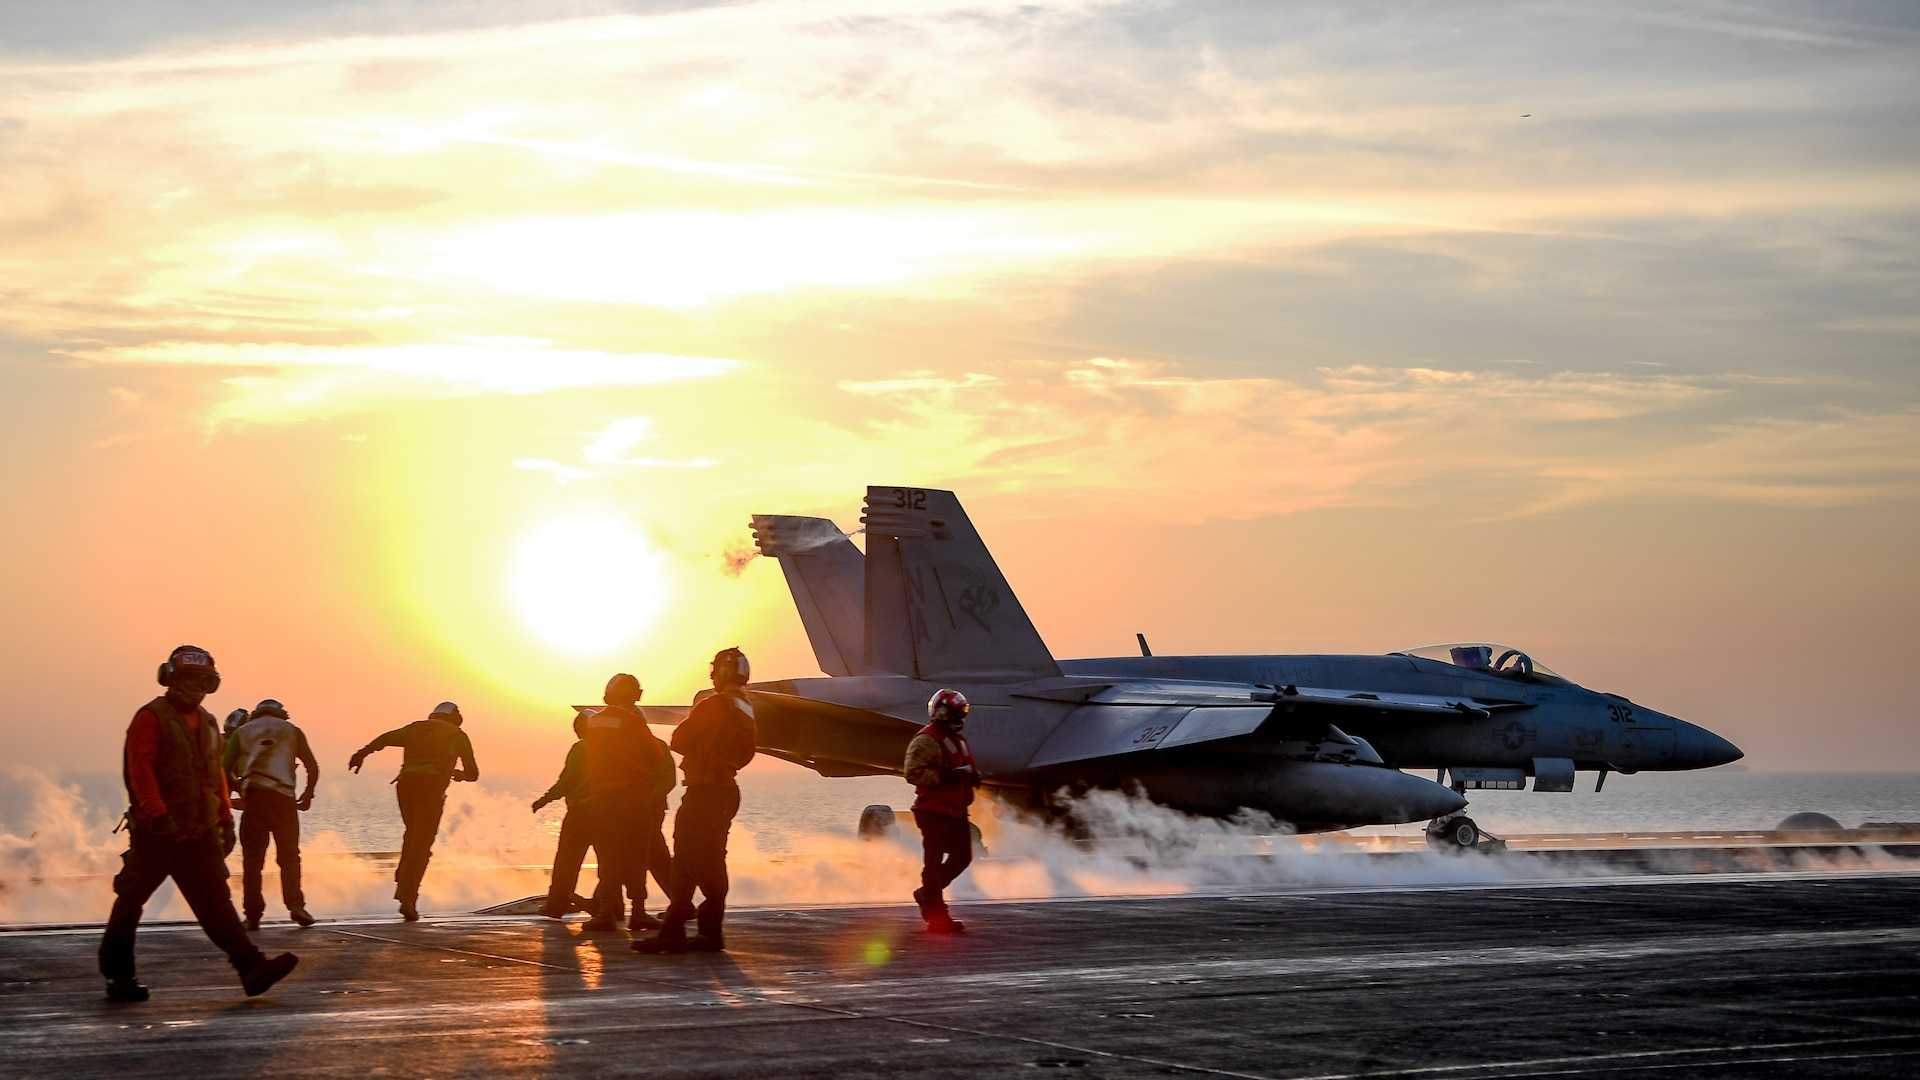 F/A-18E Super Hornet assigned to Stingers of Strike Fighter Attack Squadron 113 launches from flight deck of aircraft carrier USS Theodore Roosevelt, Arabian Gulf, February 5, 2018 (U.S. Navy/Spencer Roberts)